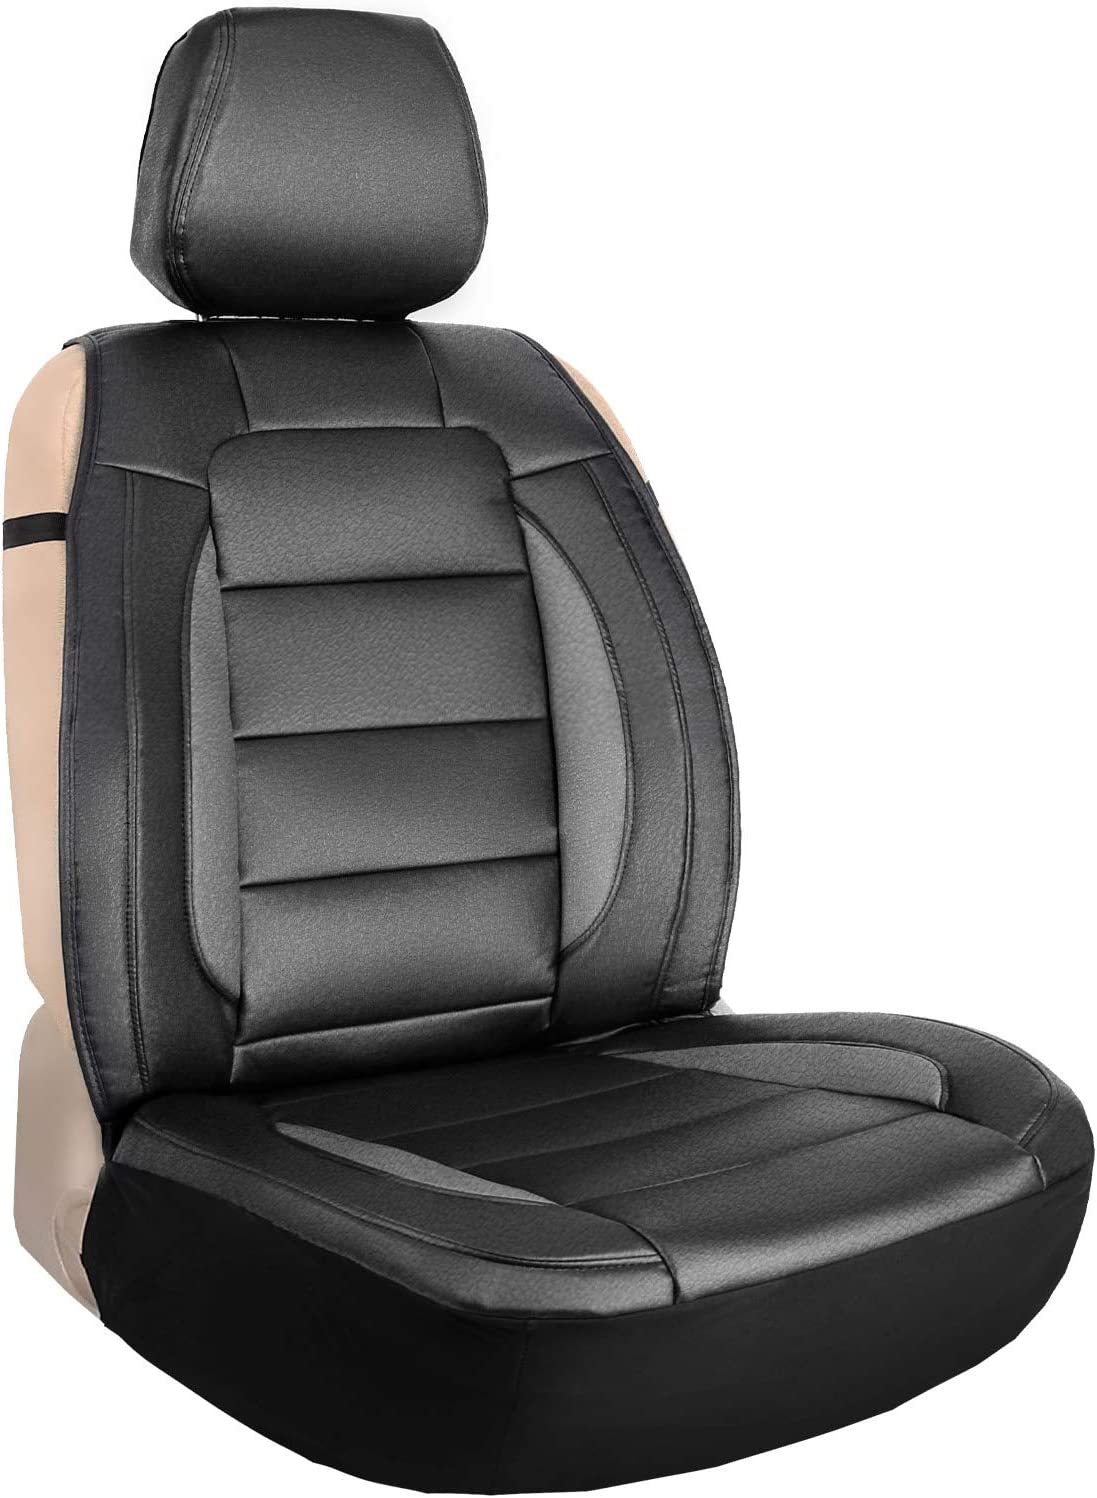 Amazon Com Leader Accessories Black Grey One Leather Seat Cover Universal Sideless Cushion For Car Truck Suv Front Seats Automotive